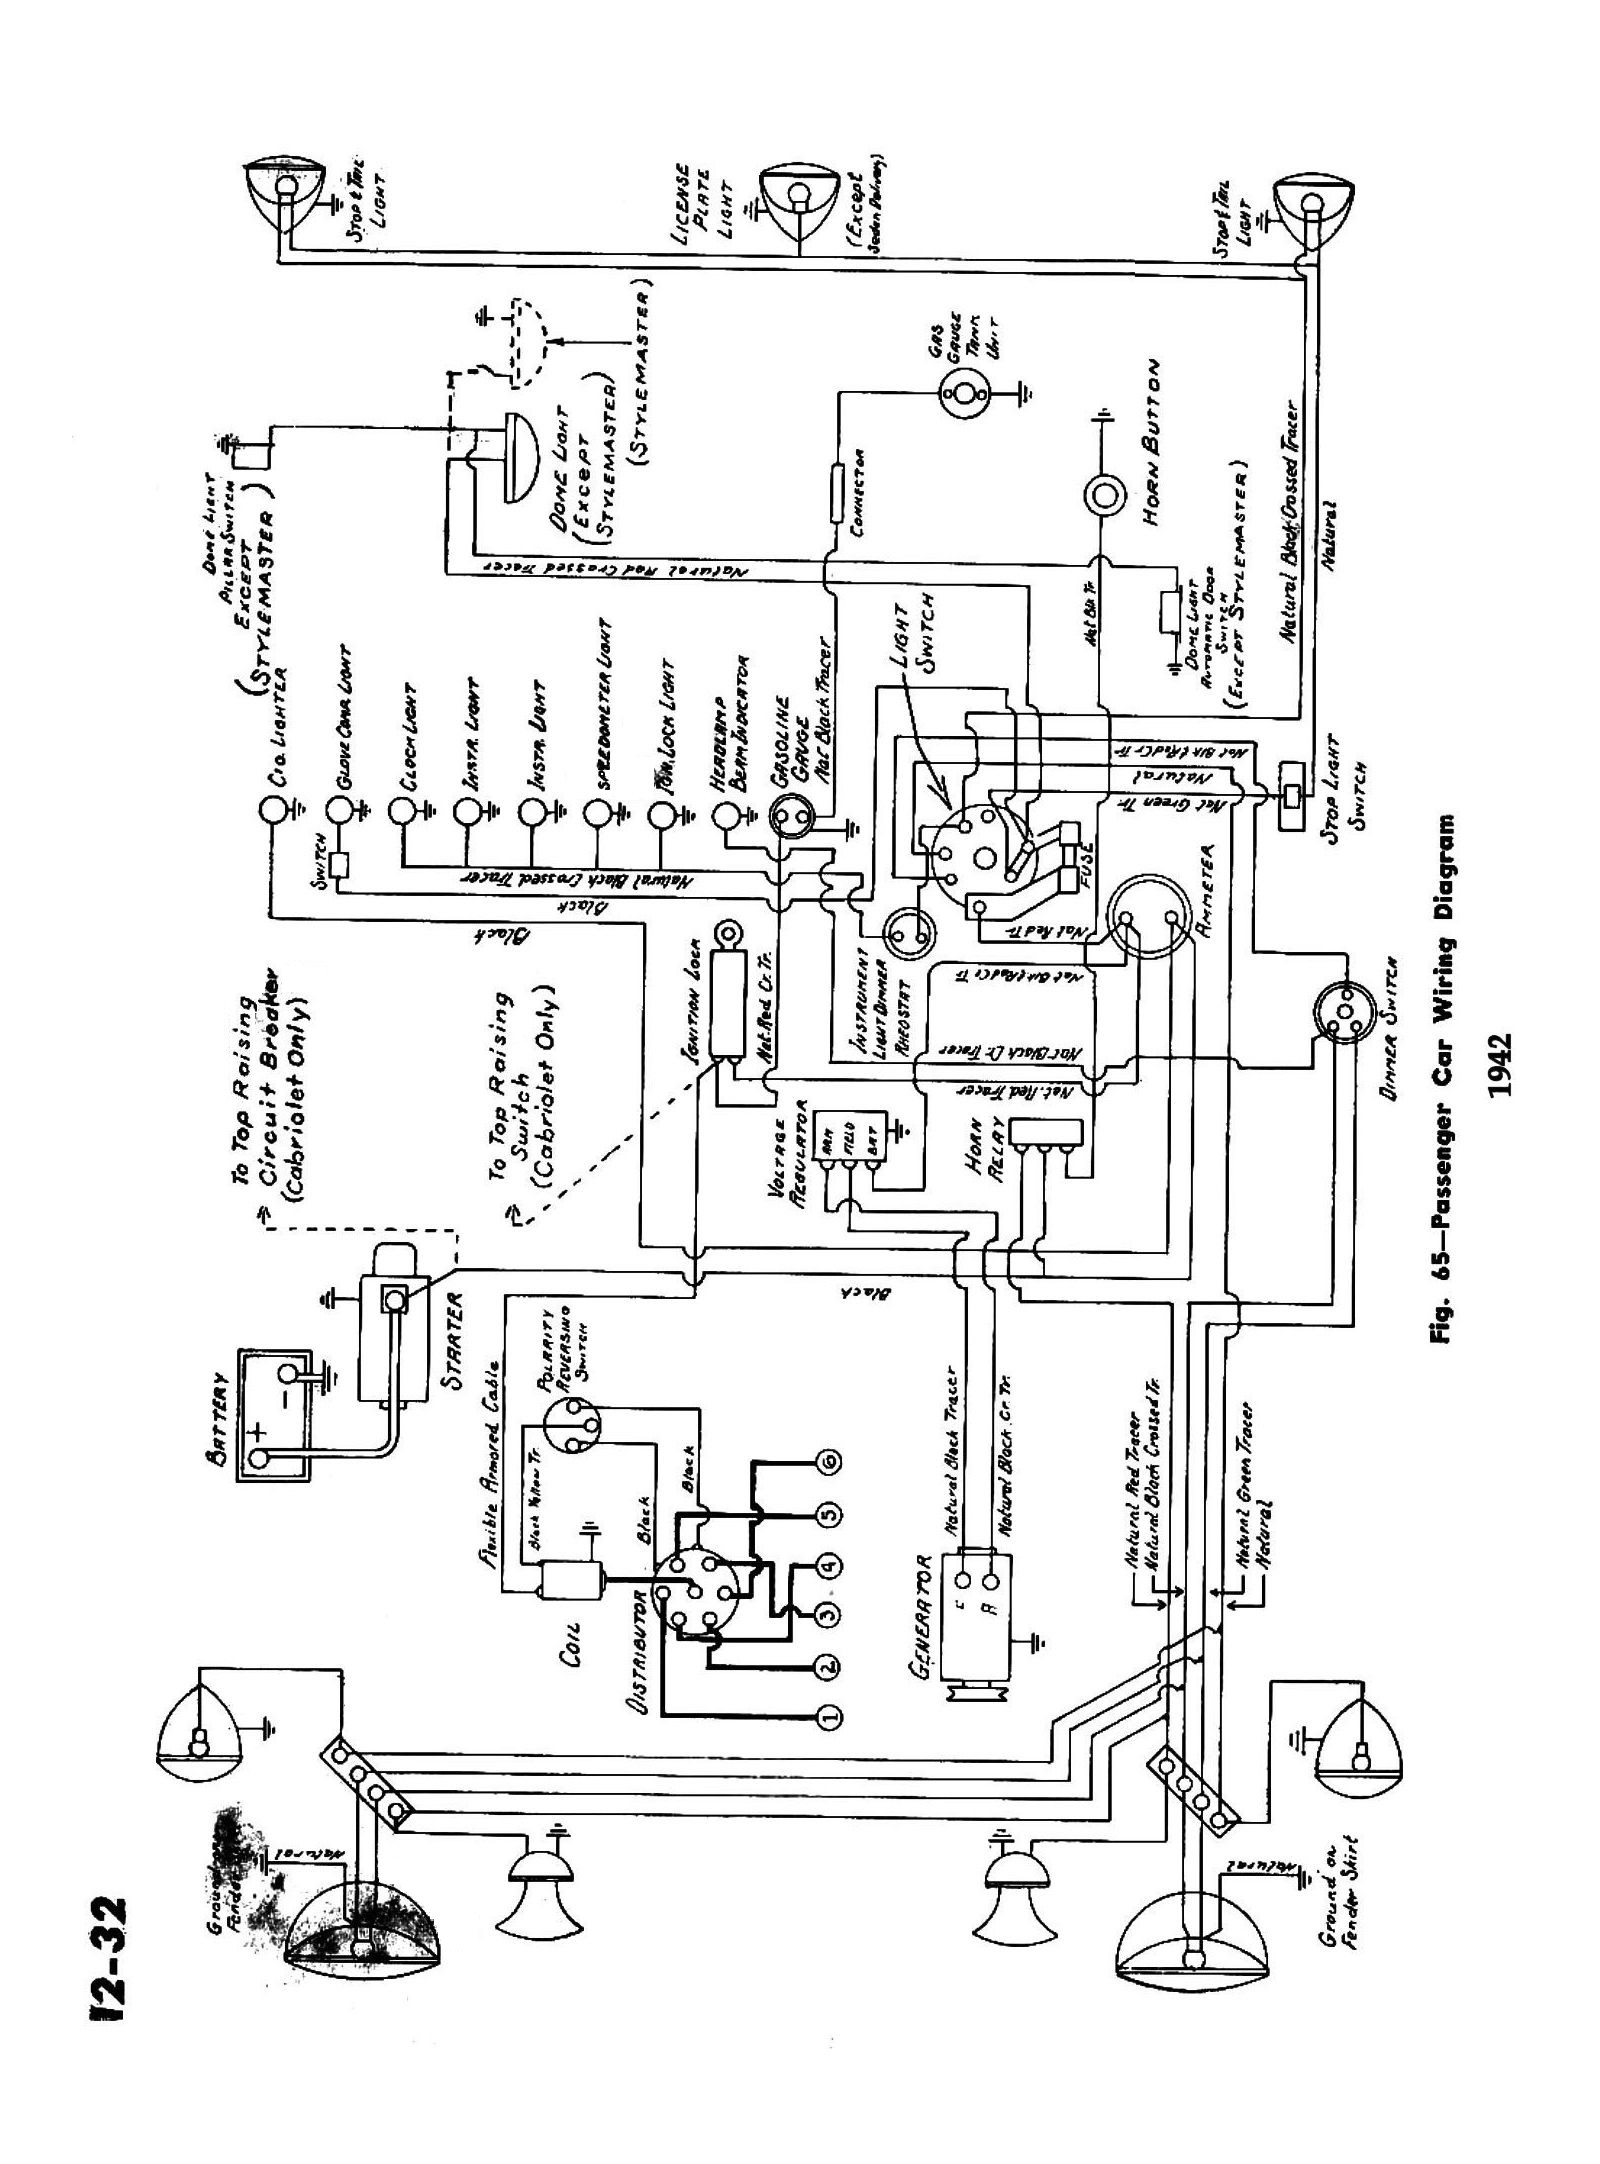 hight resolution of wiring diagram for 1950 chevy truck wiring diagram detailed 55 chevy ignition switch wiring 1950 chevy wiring diagram